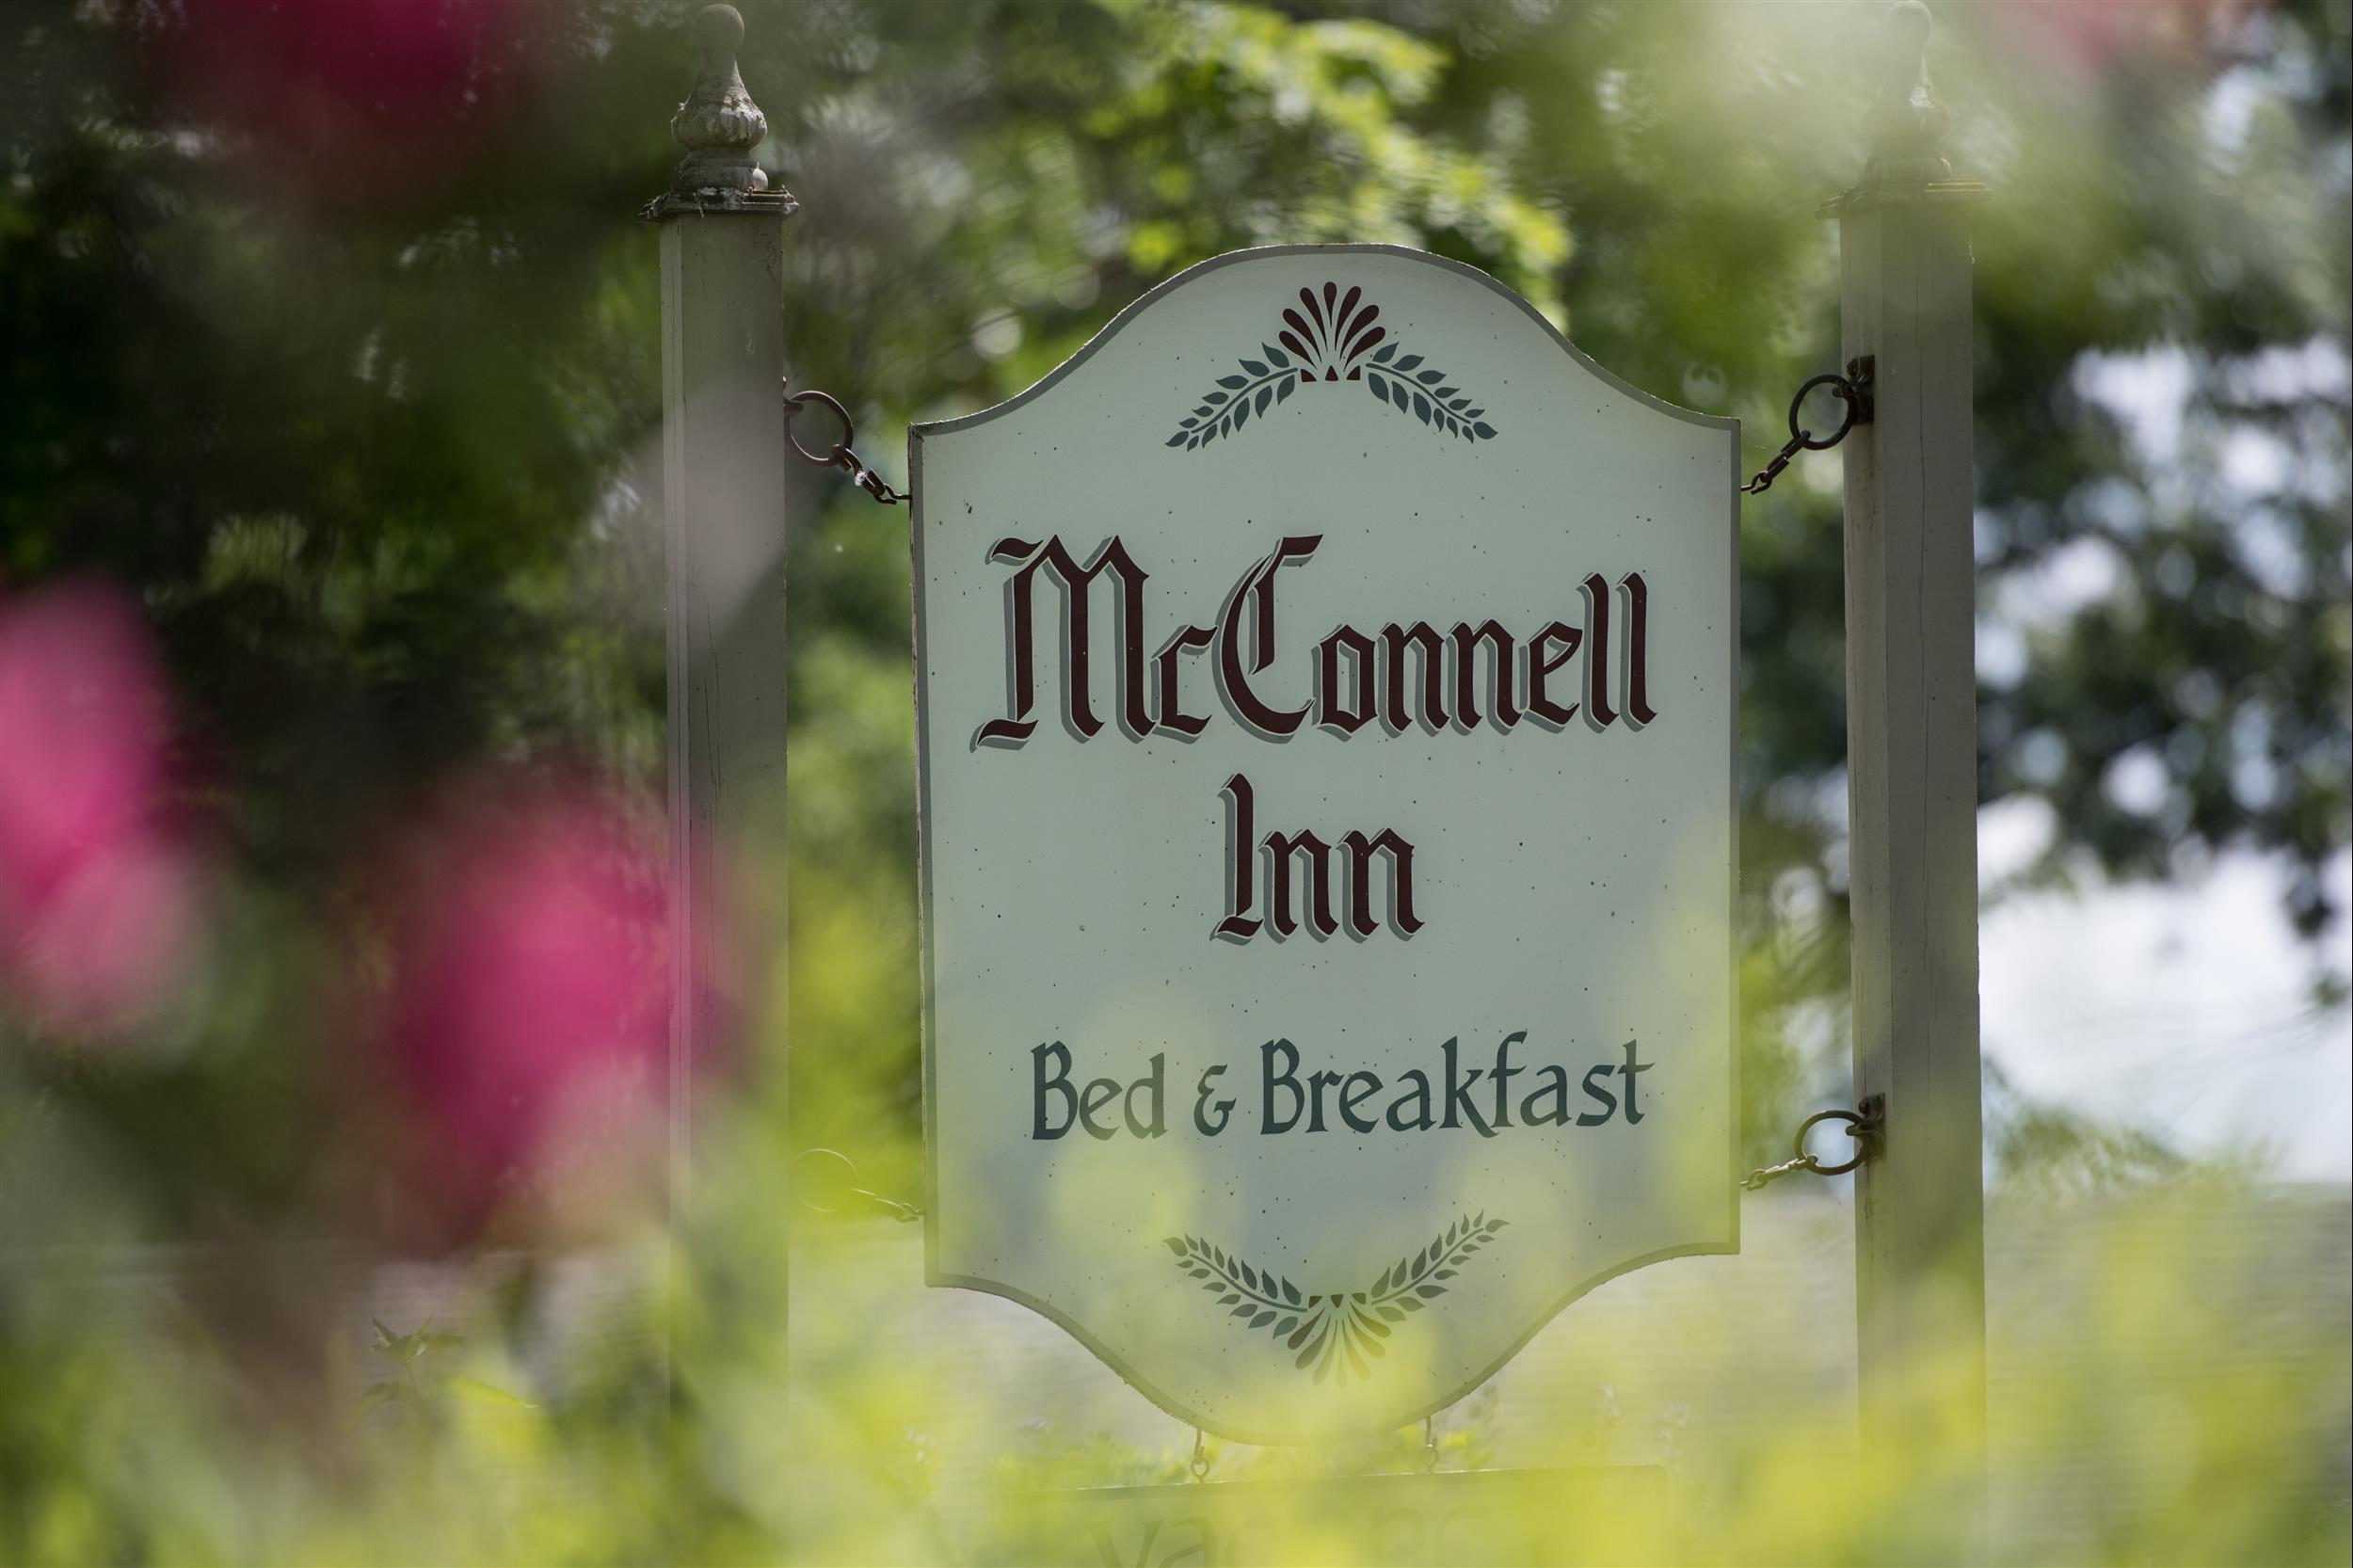 the sign for the McConnell Inn